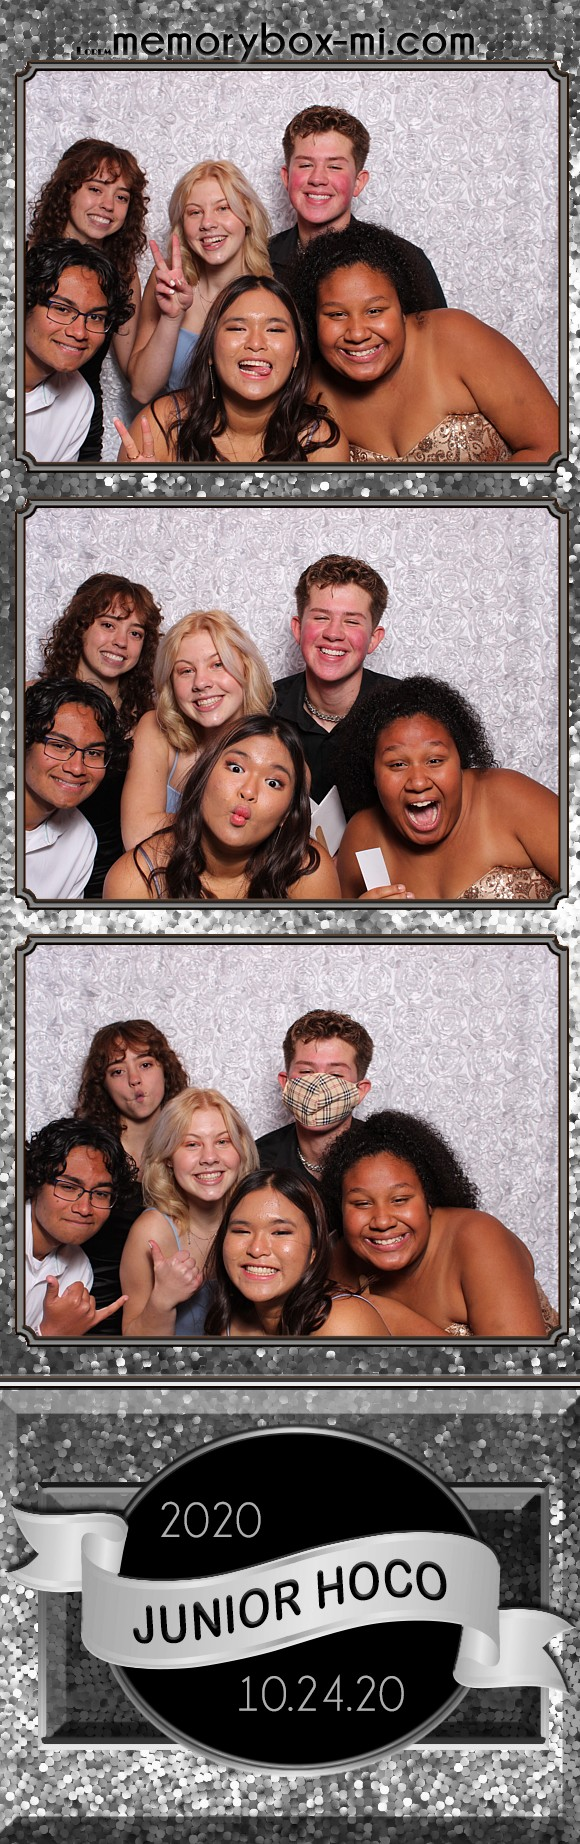 HHS Junior HOCO | View more photos from the event at gallery.detroitphotobooth.com/u/photobooth/HHS-Junior-HOCO